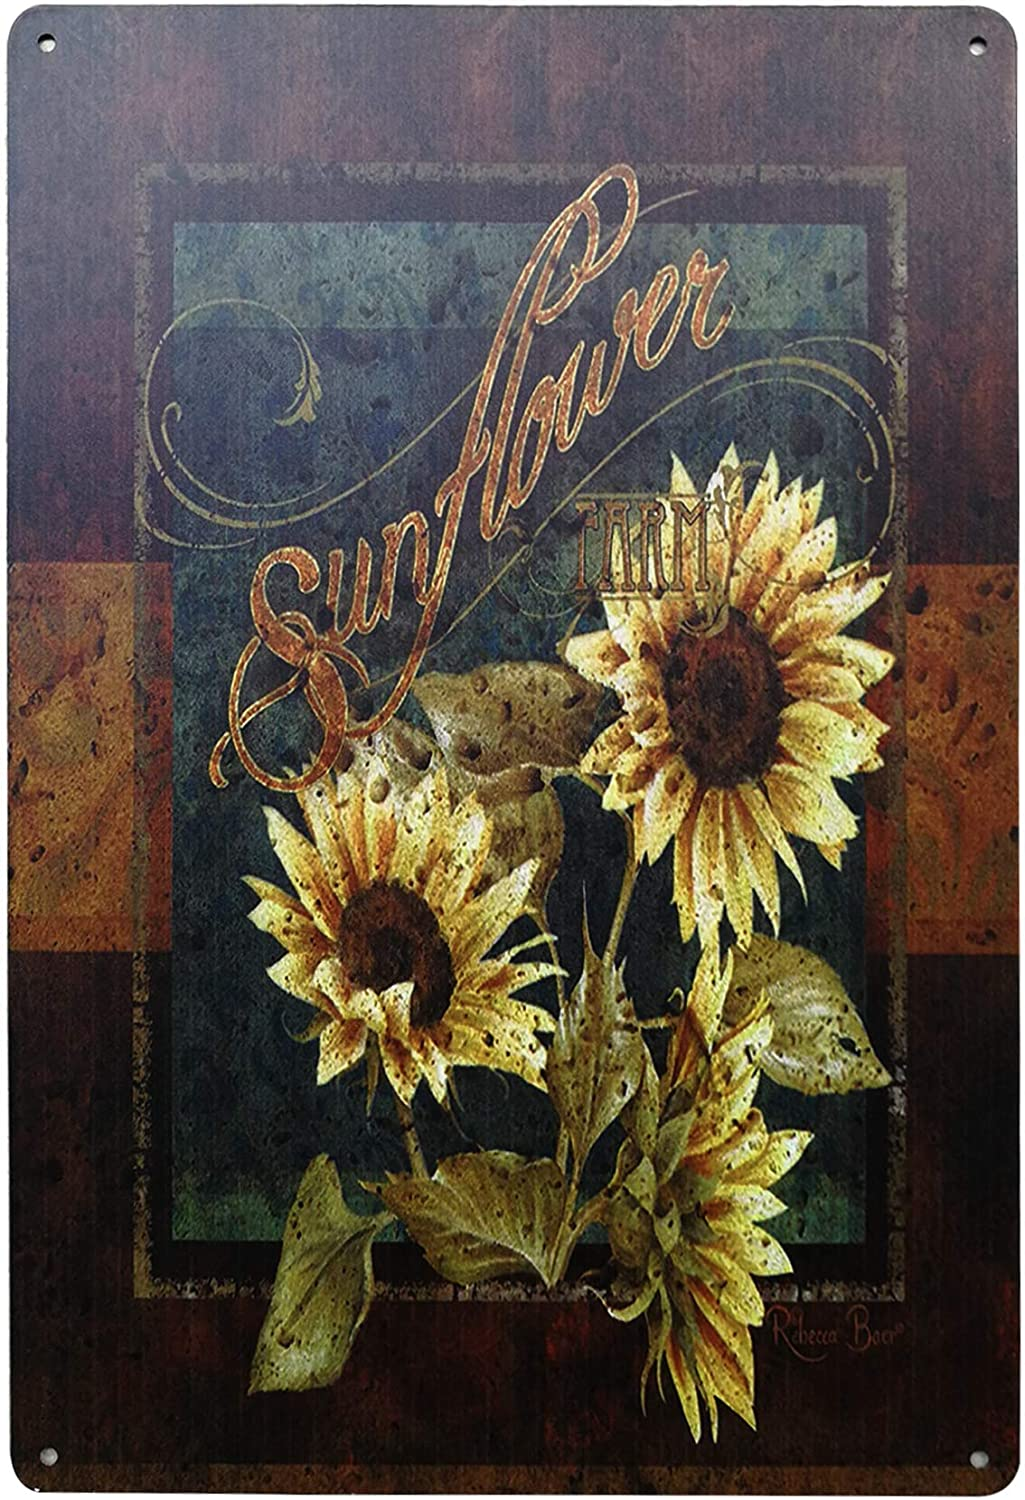 "TISOSO Rustic Sunflower Retro Vintage Farm Country Bar Metal Tin Sign Poster Style Wall Art Pub Bar Decor 8""X 12"" Inches"